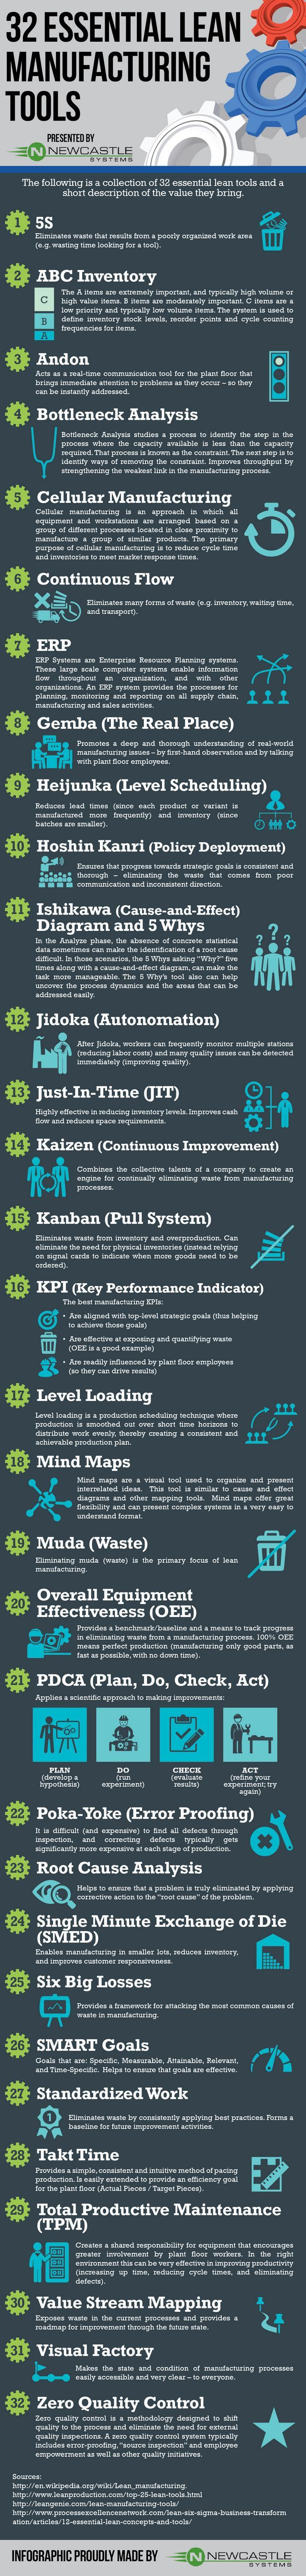 32 Essential Lean Manufacturing Tools Infographic Lean Manufacturing Industrial Engineering Business Management